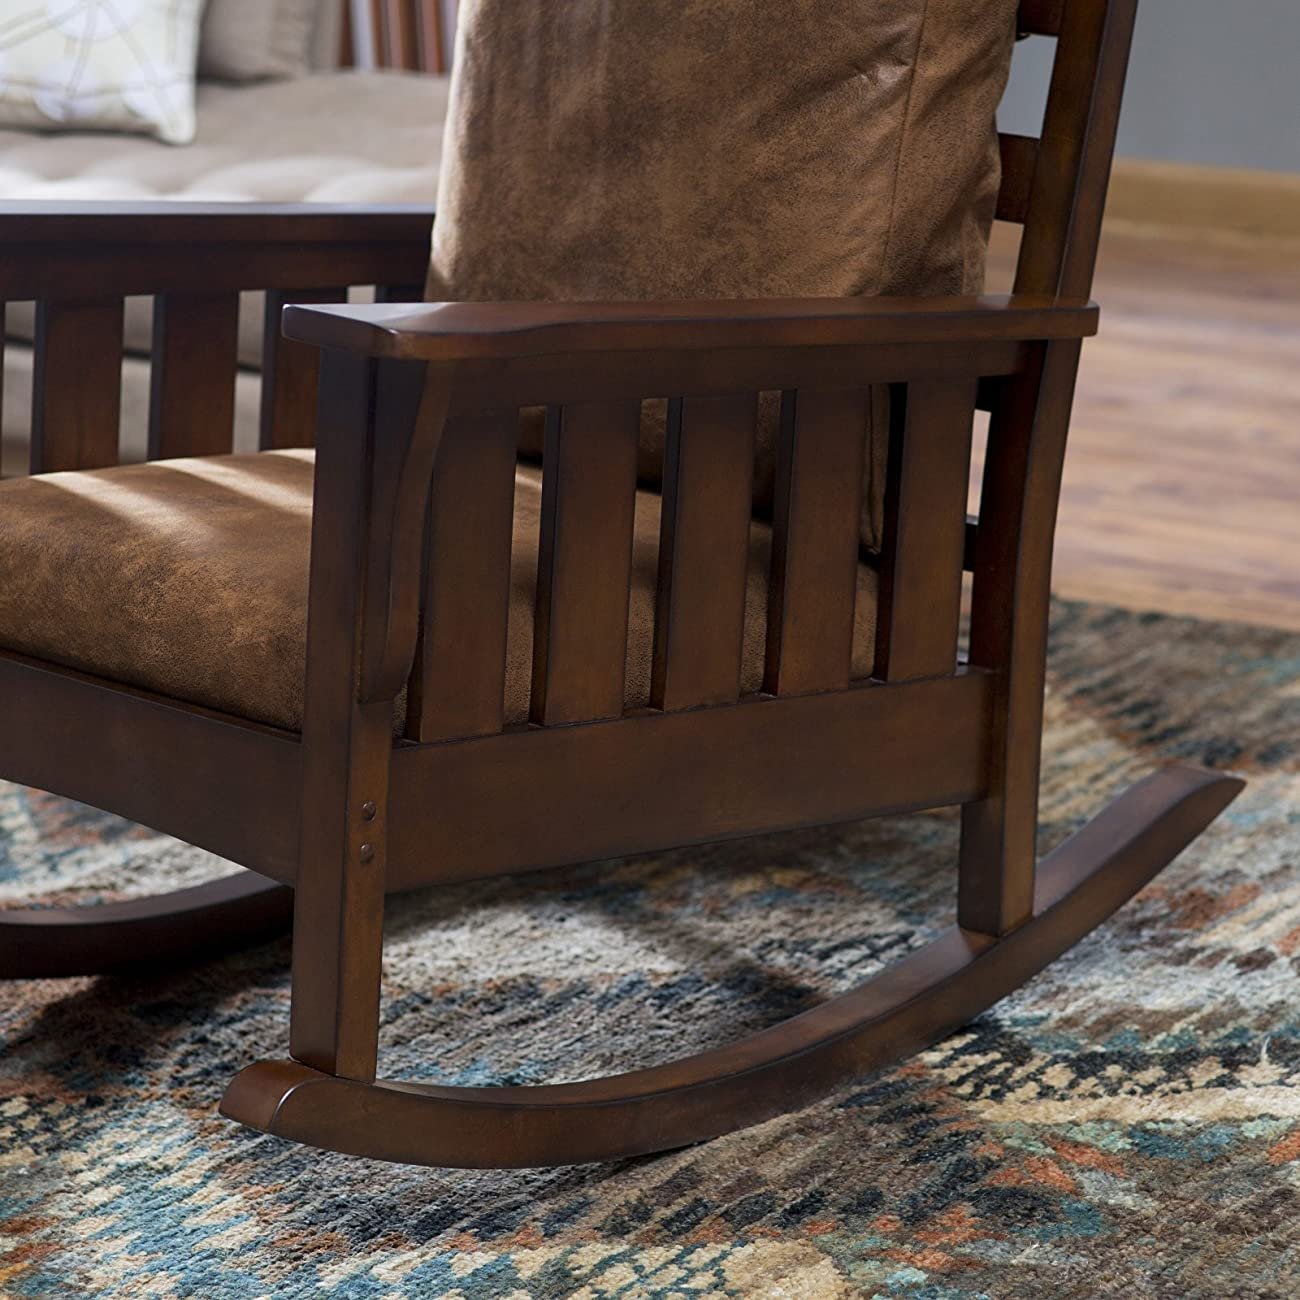 Belham Living Remington Mission Rocker - Walnut 5